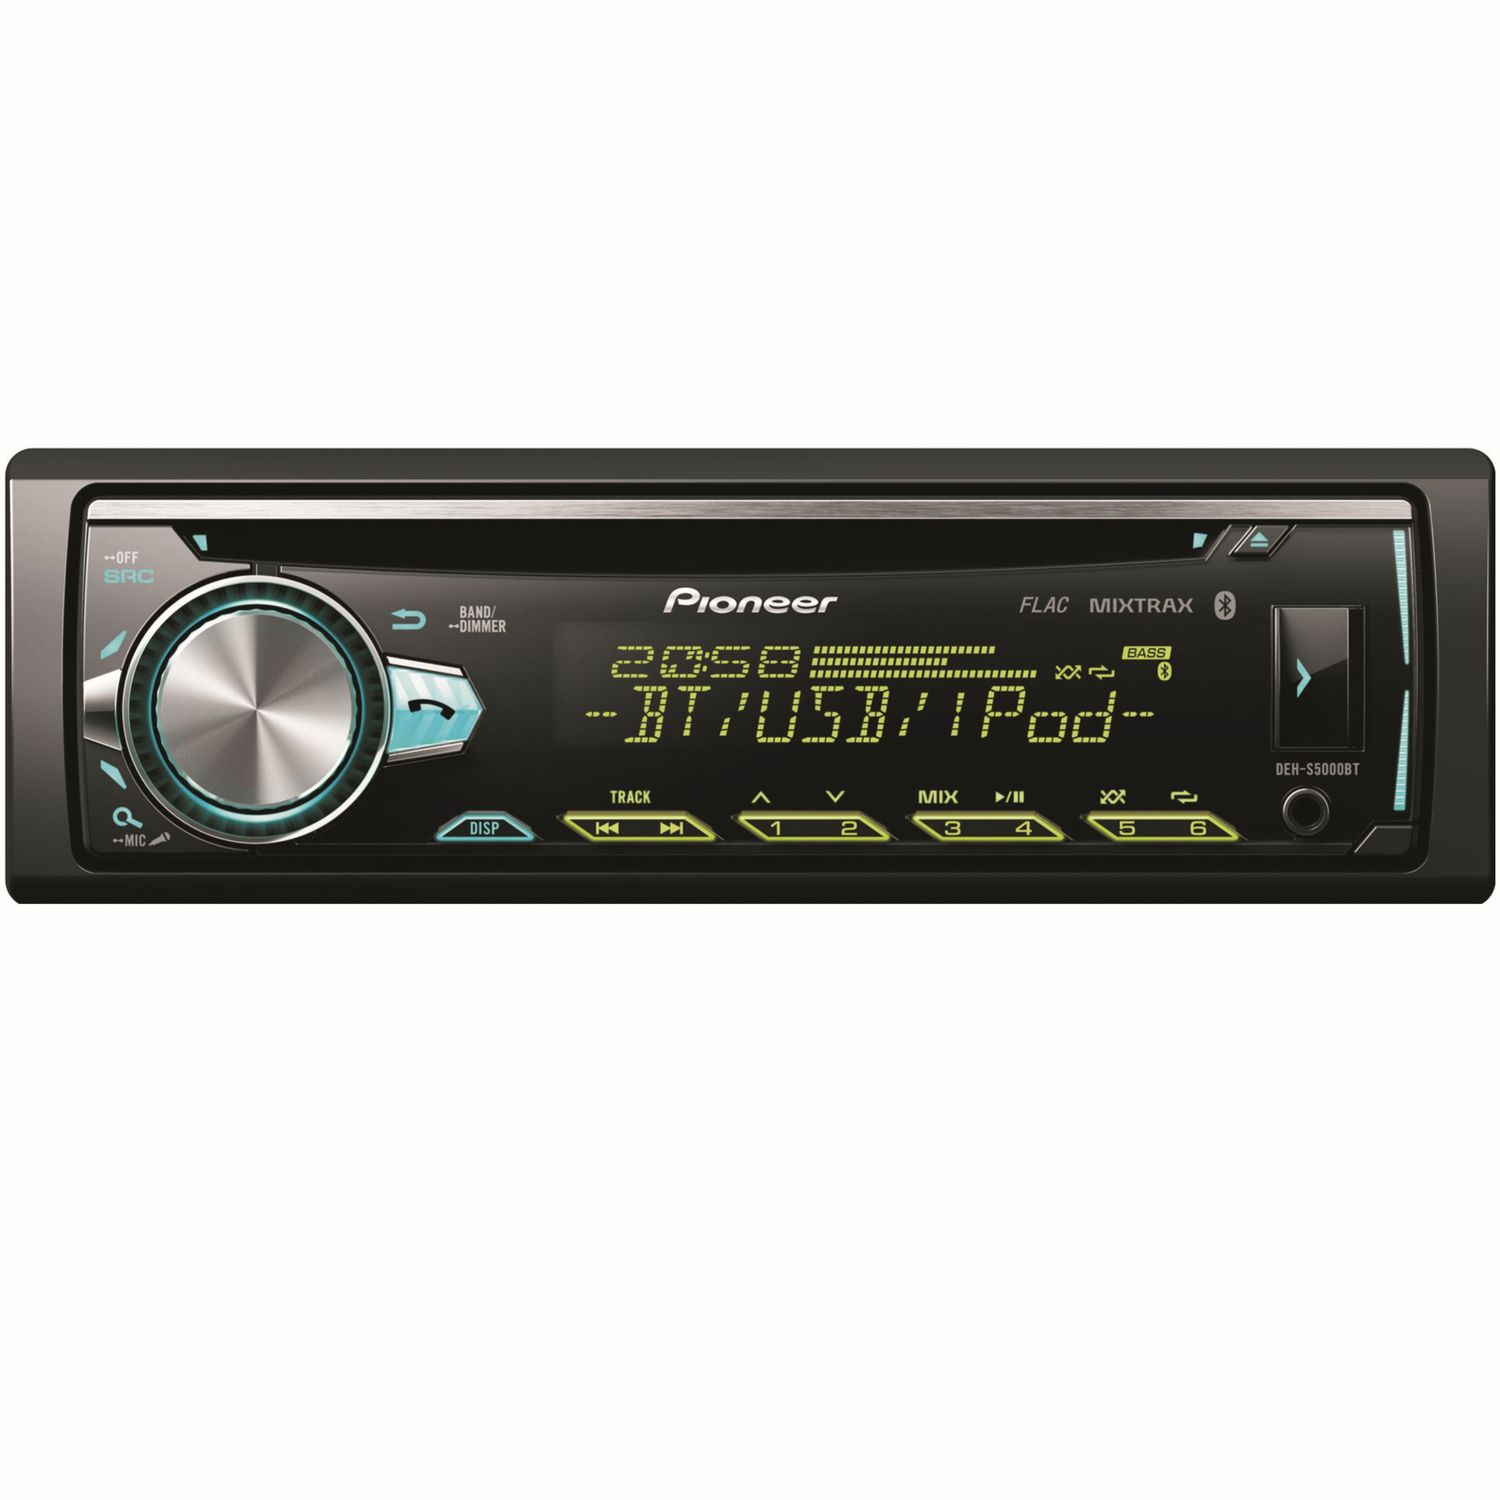 pioneer deh s5000bt cd mp3 usb aux autoradio mit bluetooth. Black Bedroom Furniture Sets. Home Design Ideas